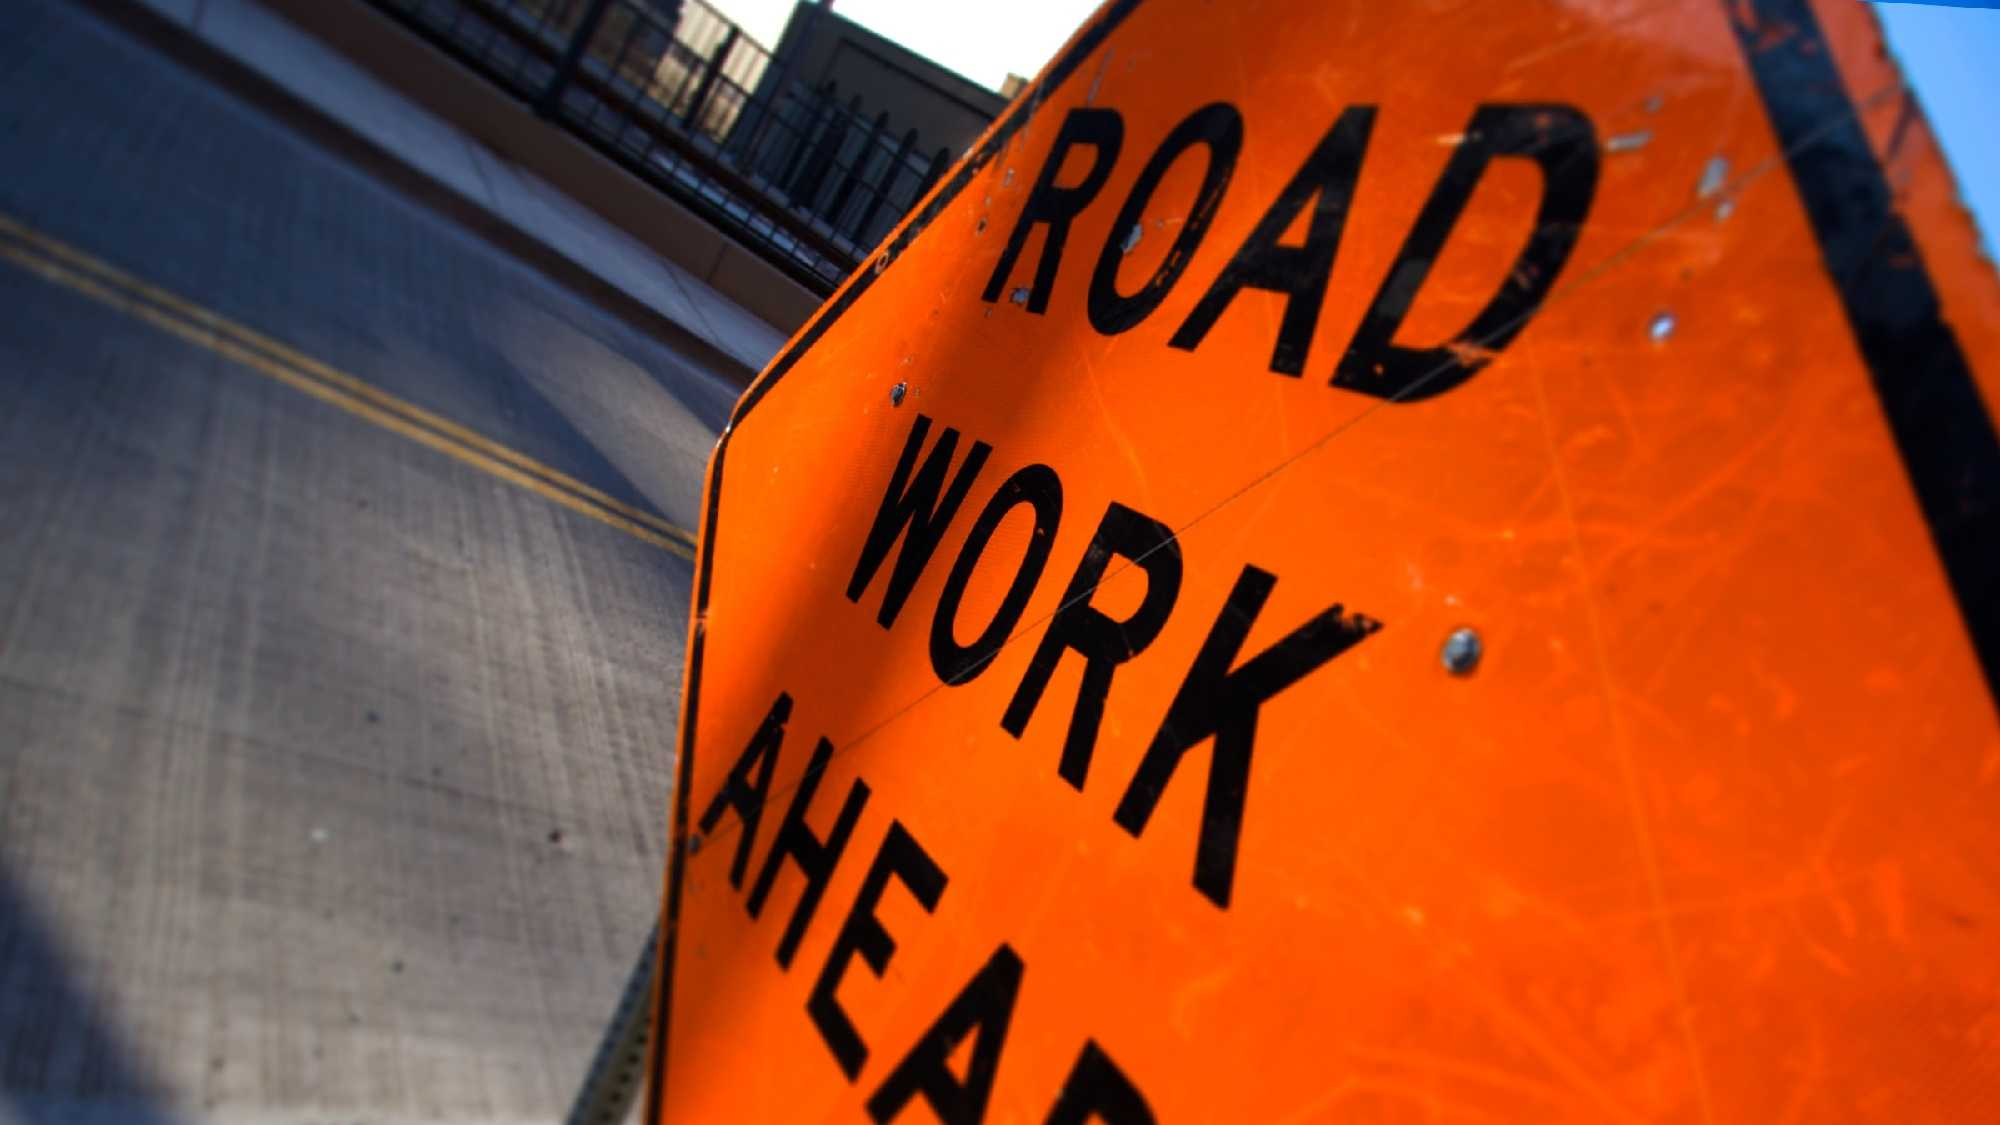 road work ahead - dbrekke.jpg